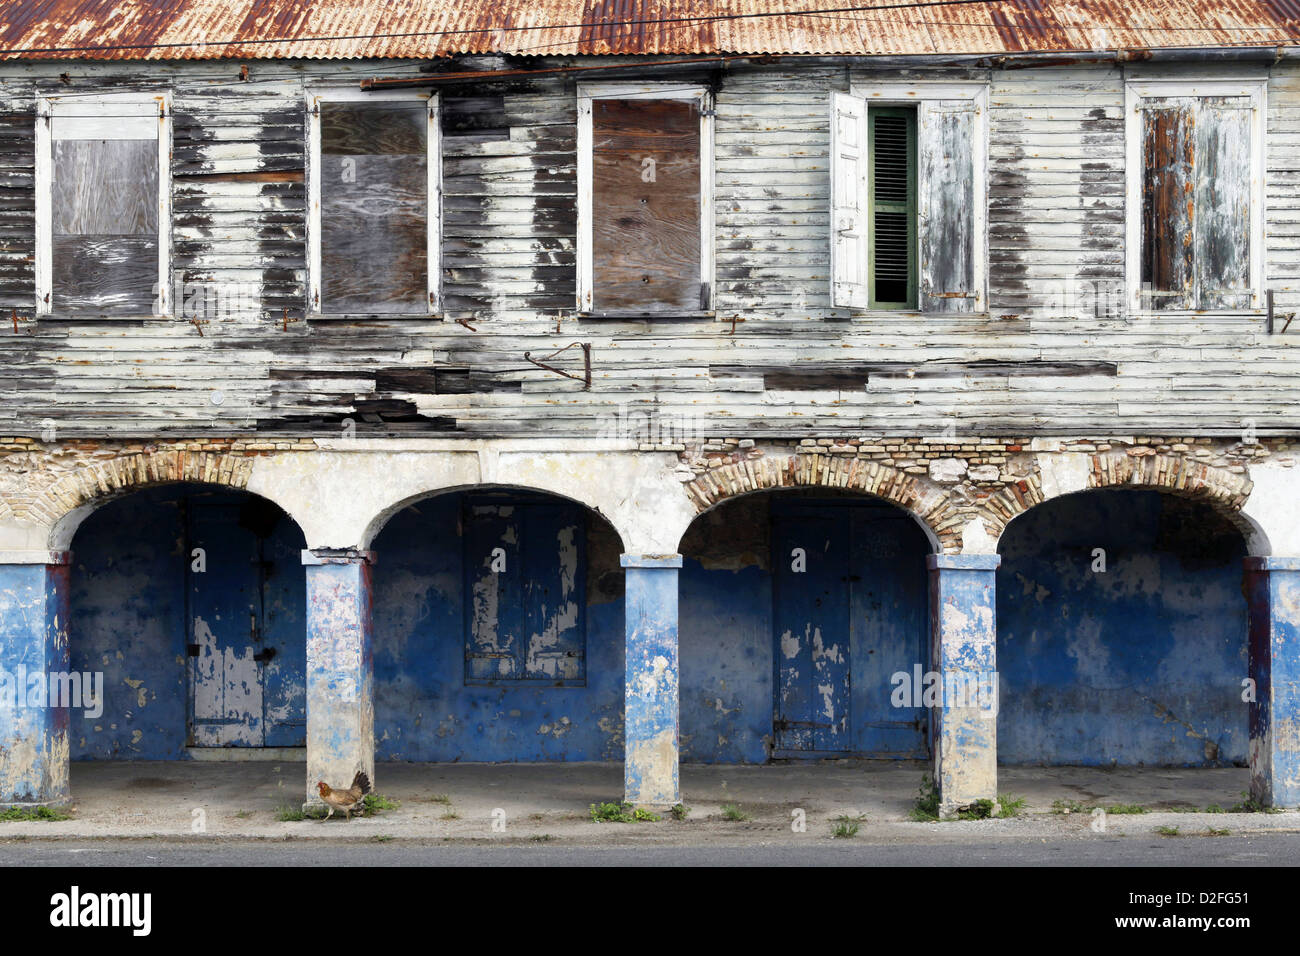 Neglected House, Frederiksted, St. Croix, US Virgin Islands, Caribbean - Stock Image